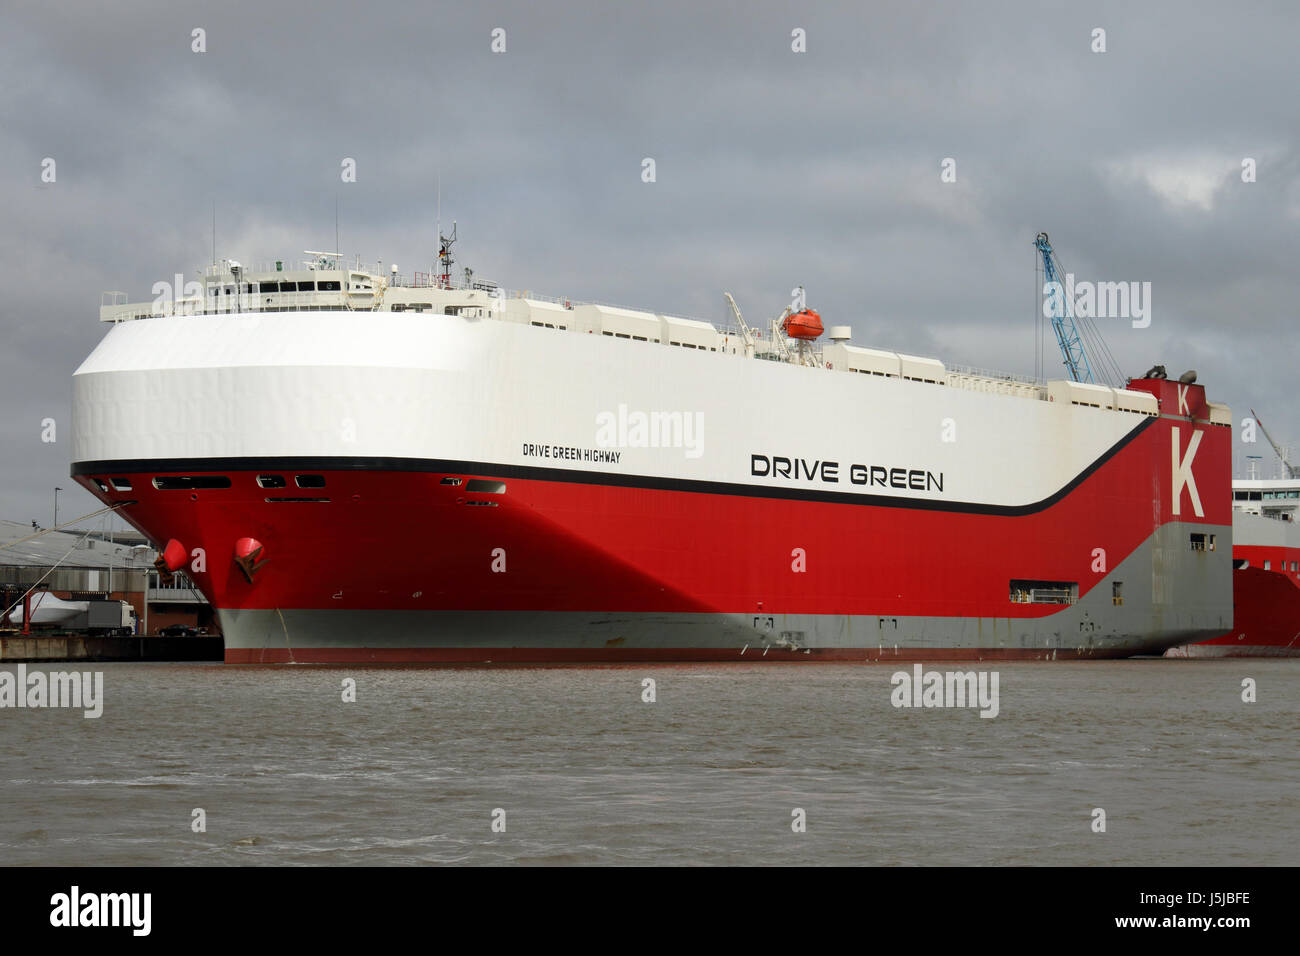 Car Carrier Drive Green Highway in Bremerhaven Stock Photo